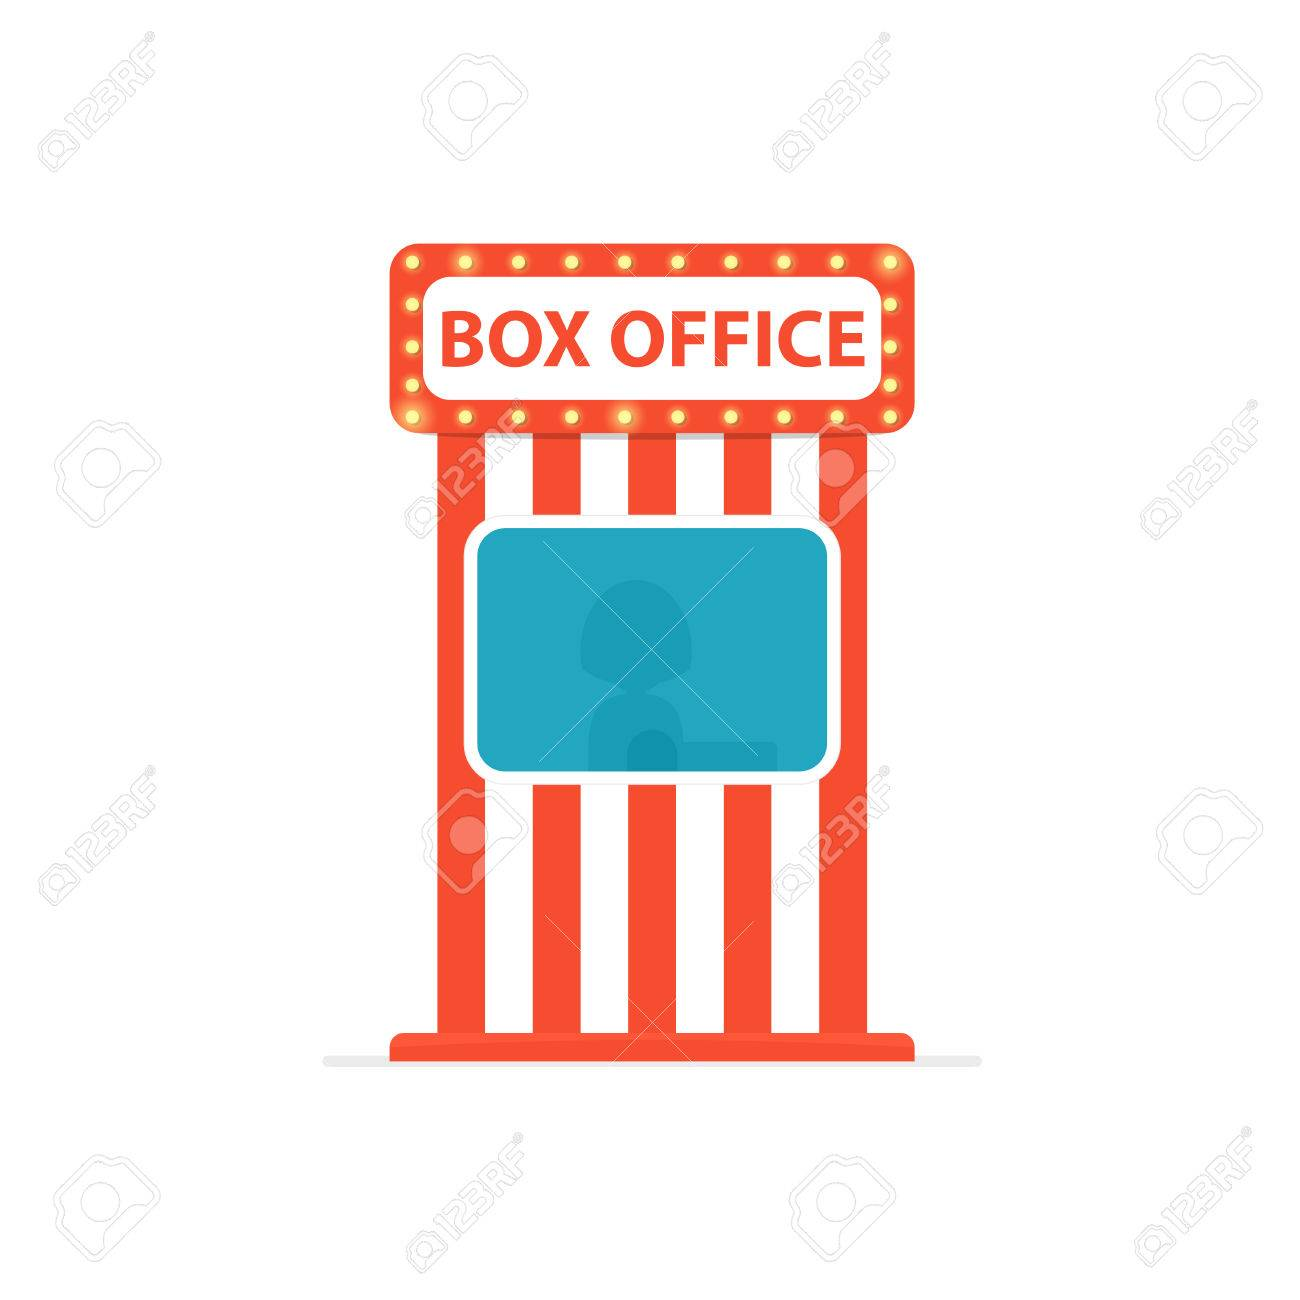 Ticket box office. Vector illustration isolated on white background - 82196731